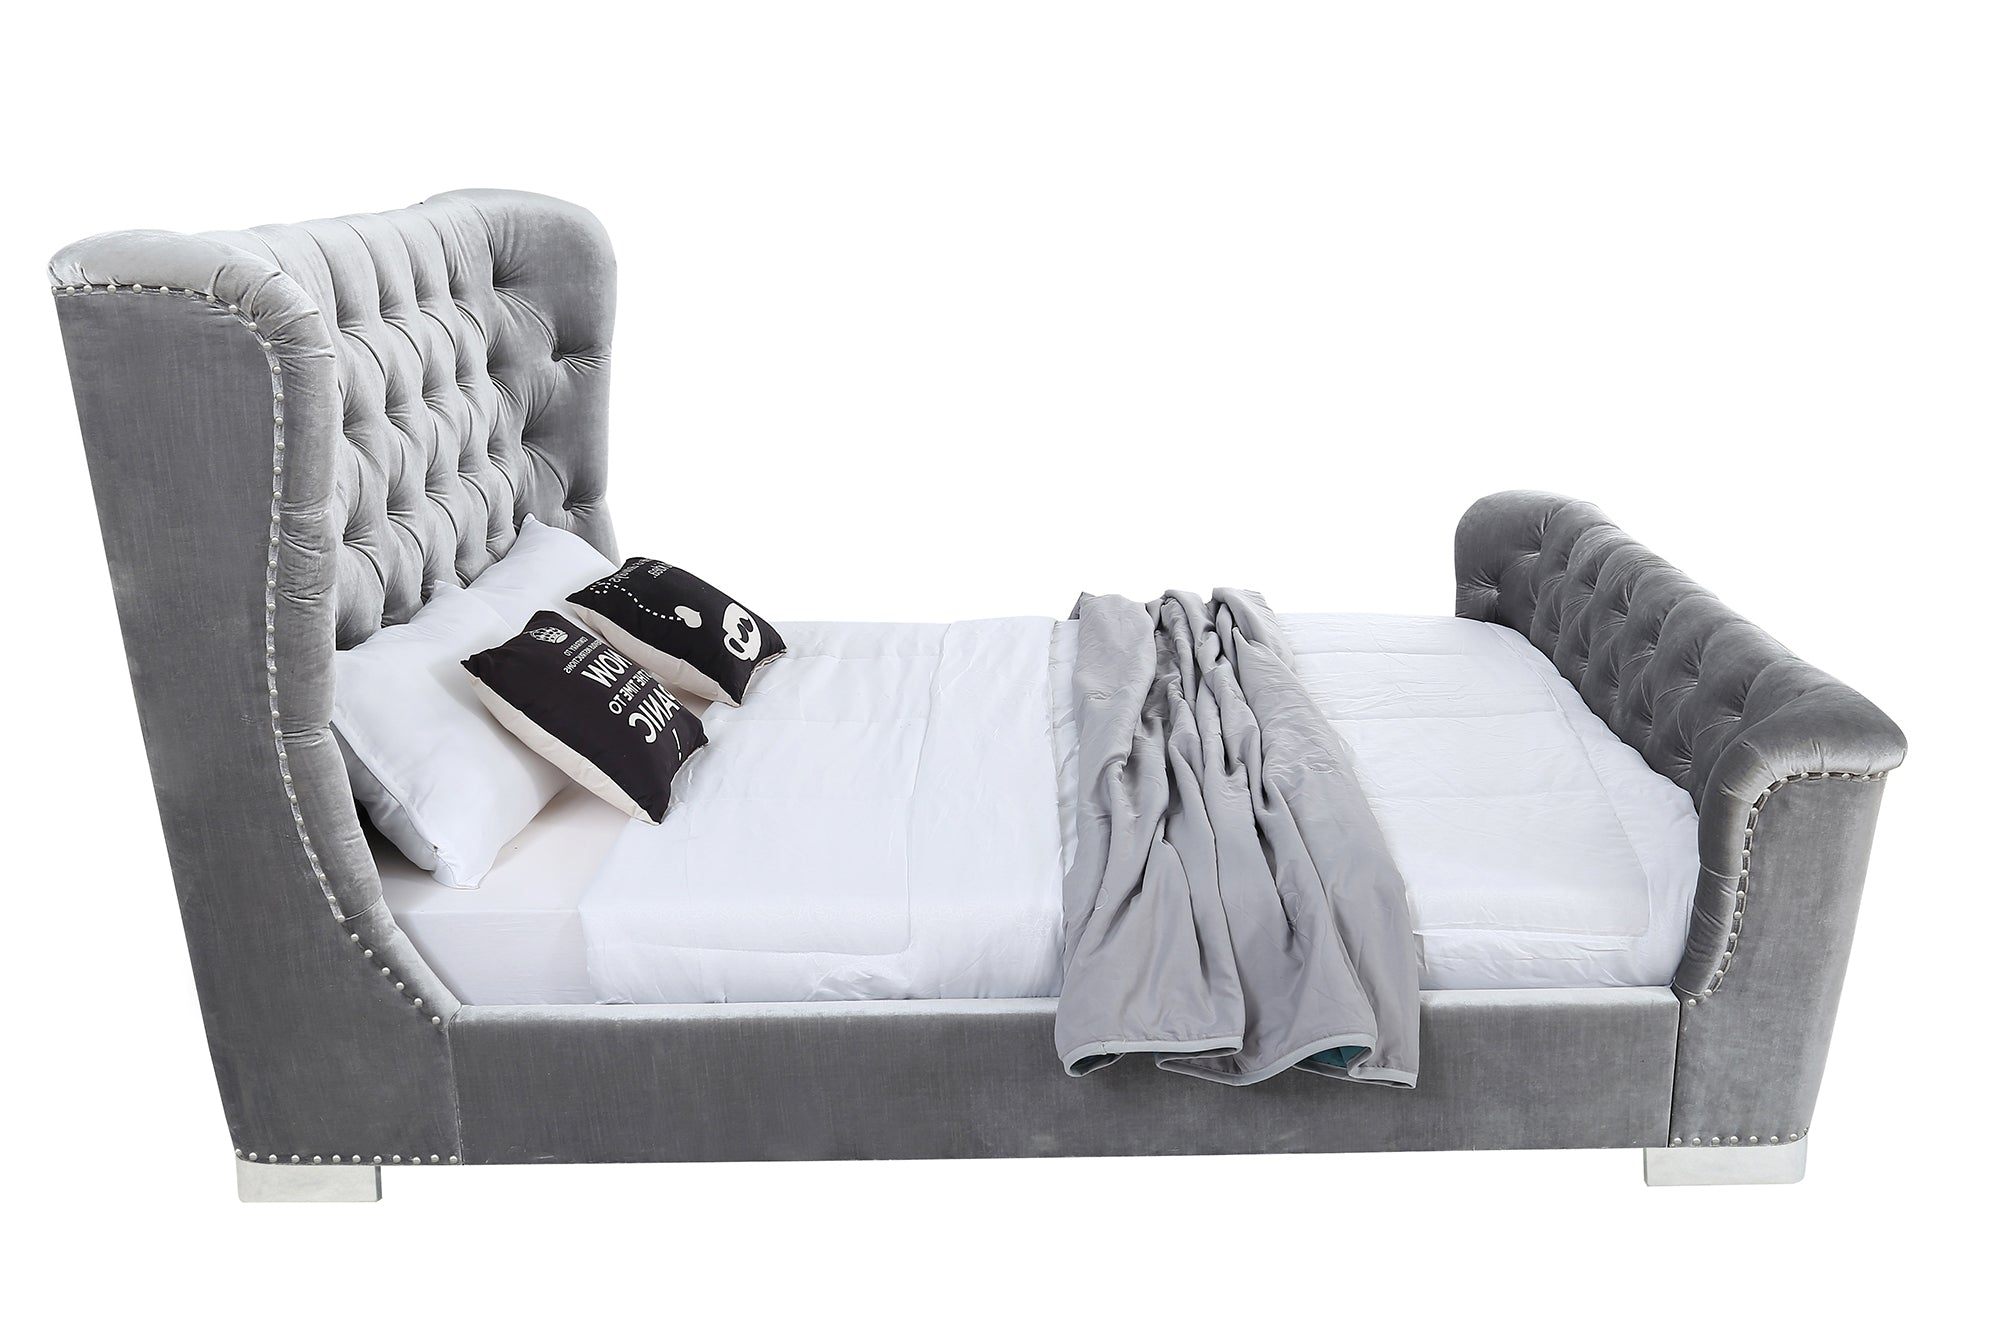 Belvedere 6' Bed - Pewter